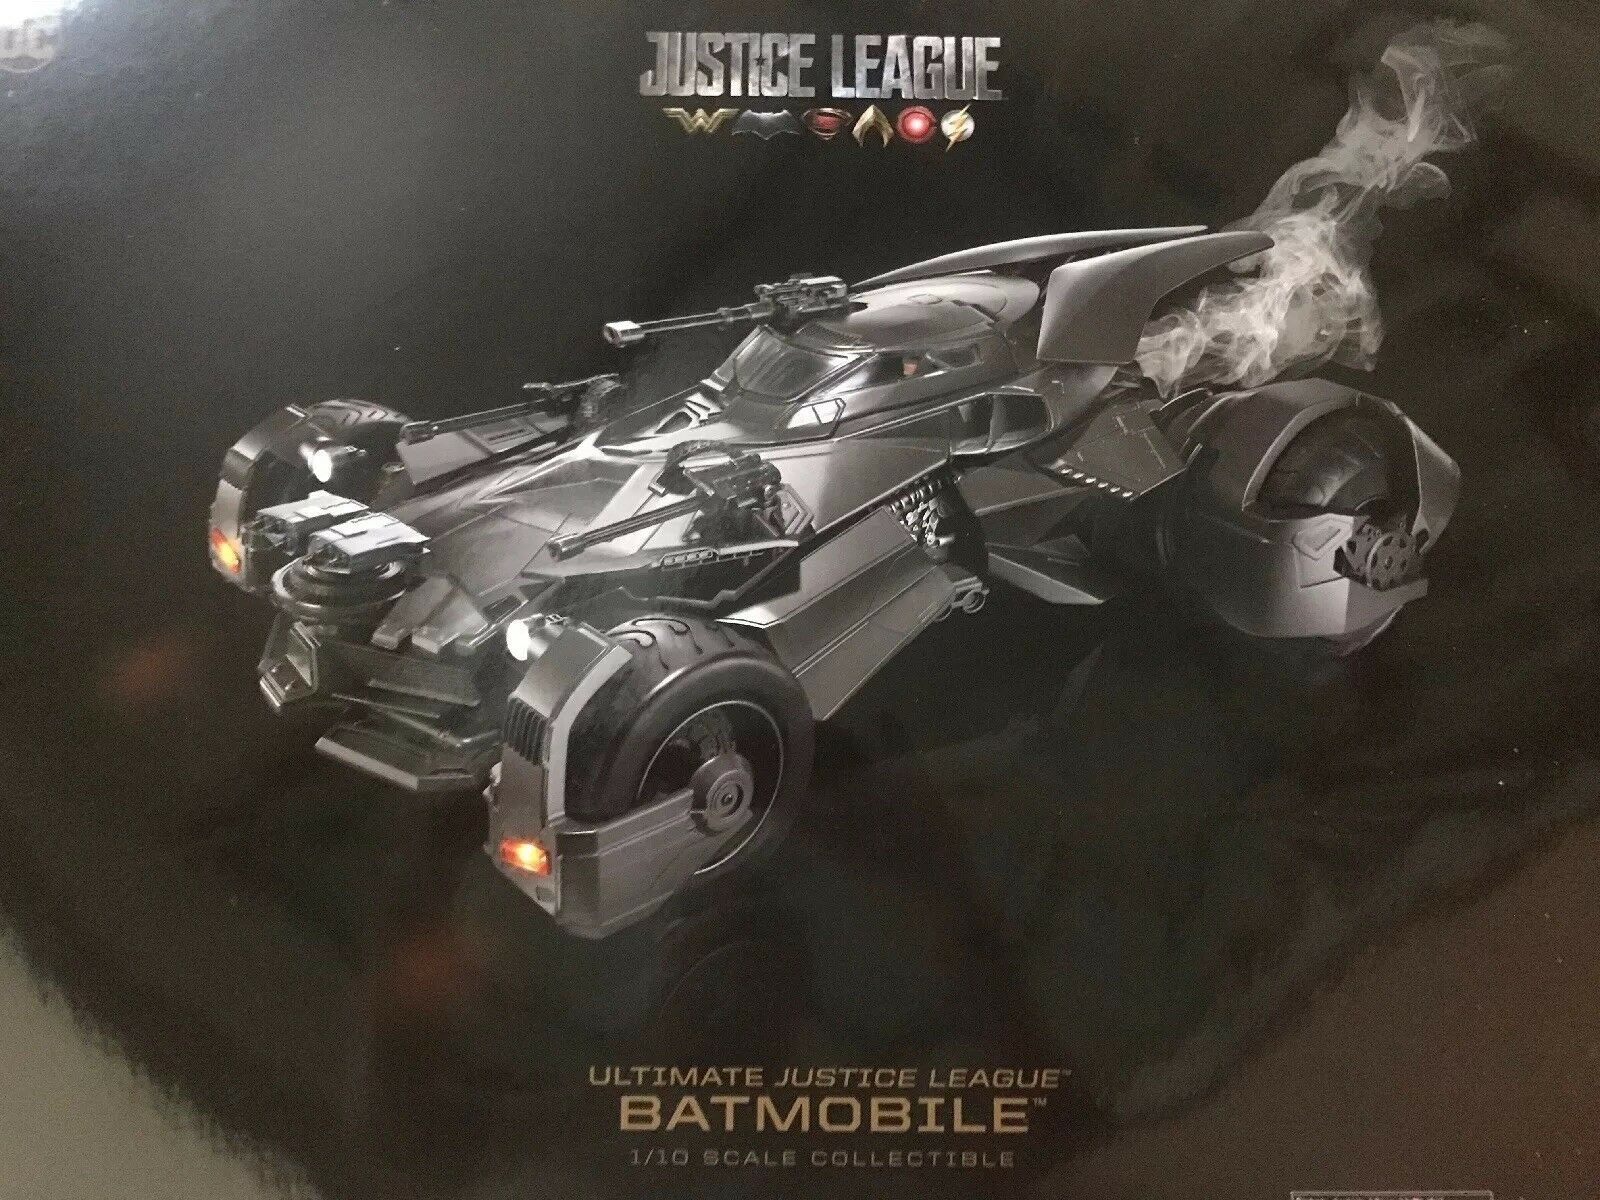 NIB- Ultimate Justice League Batmobile 1 10 Scale Collectible DC